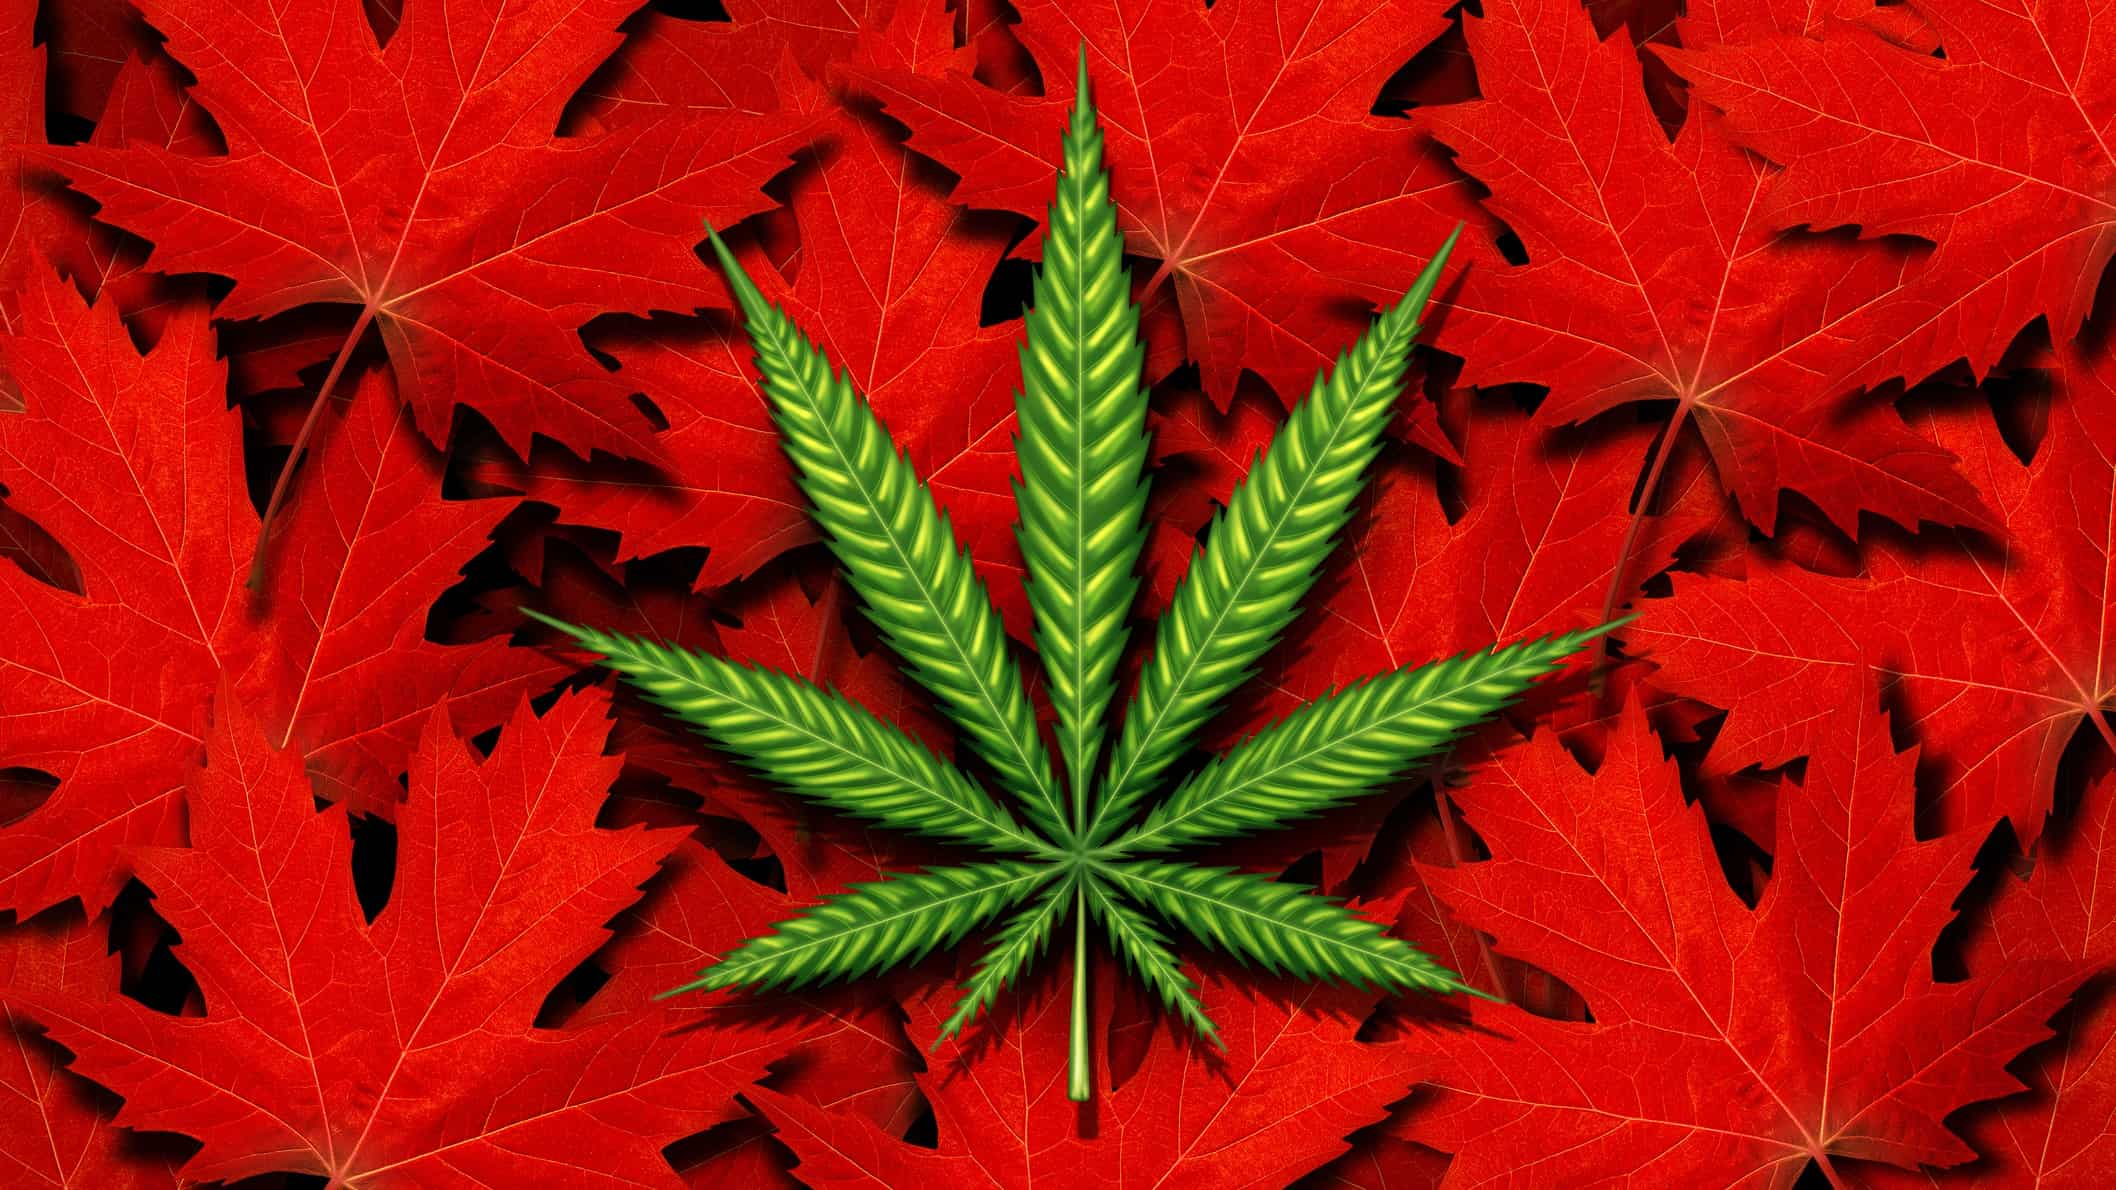 asx share price represented by green cannabis leaf sitting atop red maple leaves